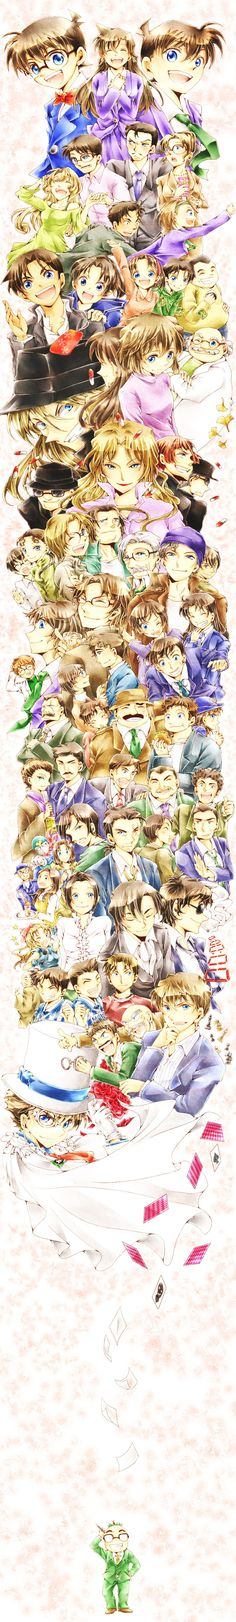 Anime: Detective Conan Rate: 9 EXTRA: MAGIC KAITO!!!! My Summary: Conan is a fake name that the guy had to make up for his apperance. This is because he was poisoned and was supposed  to die but didn't. He just turns to a kid.